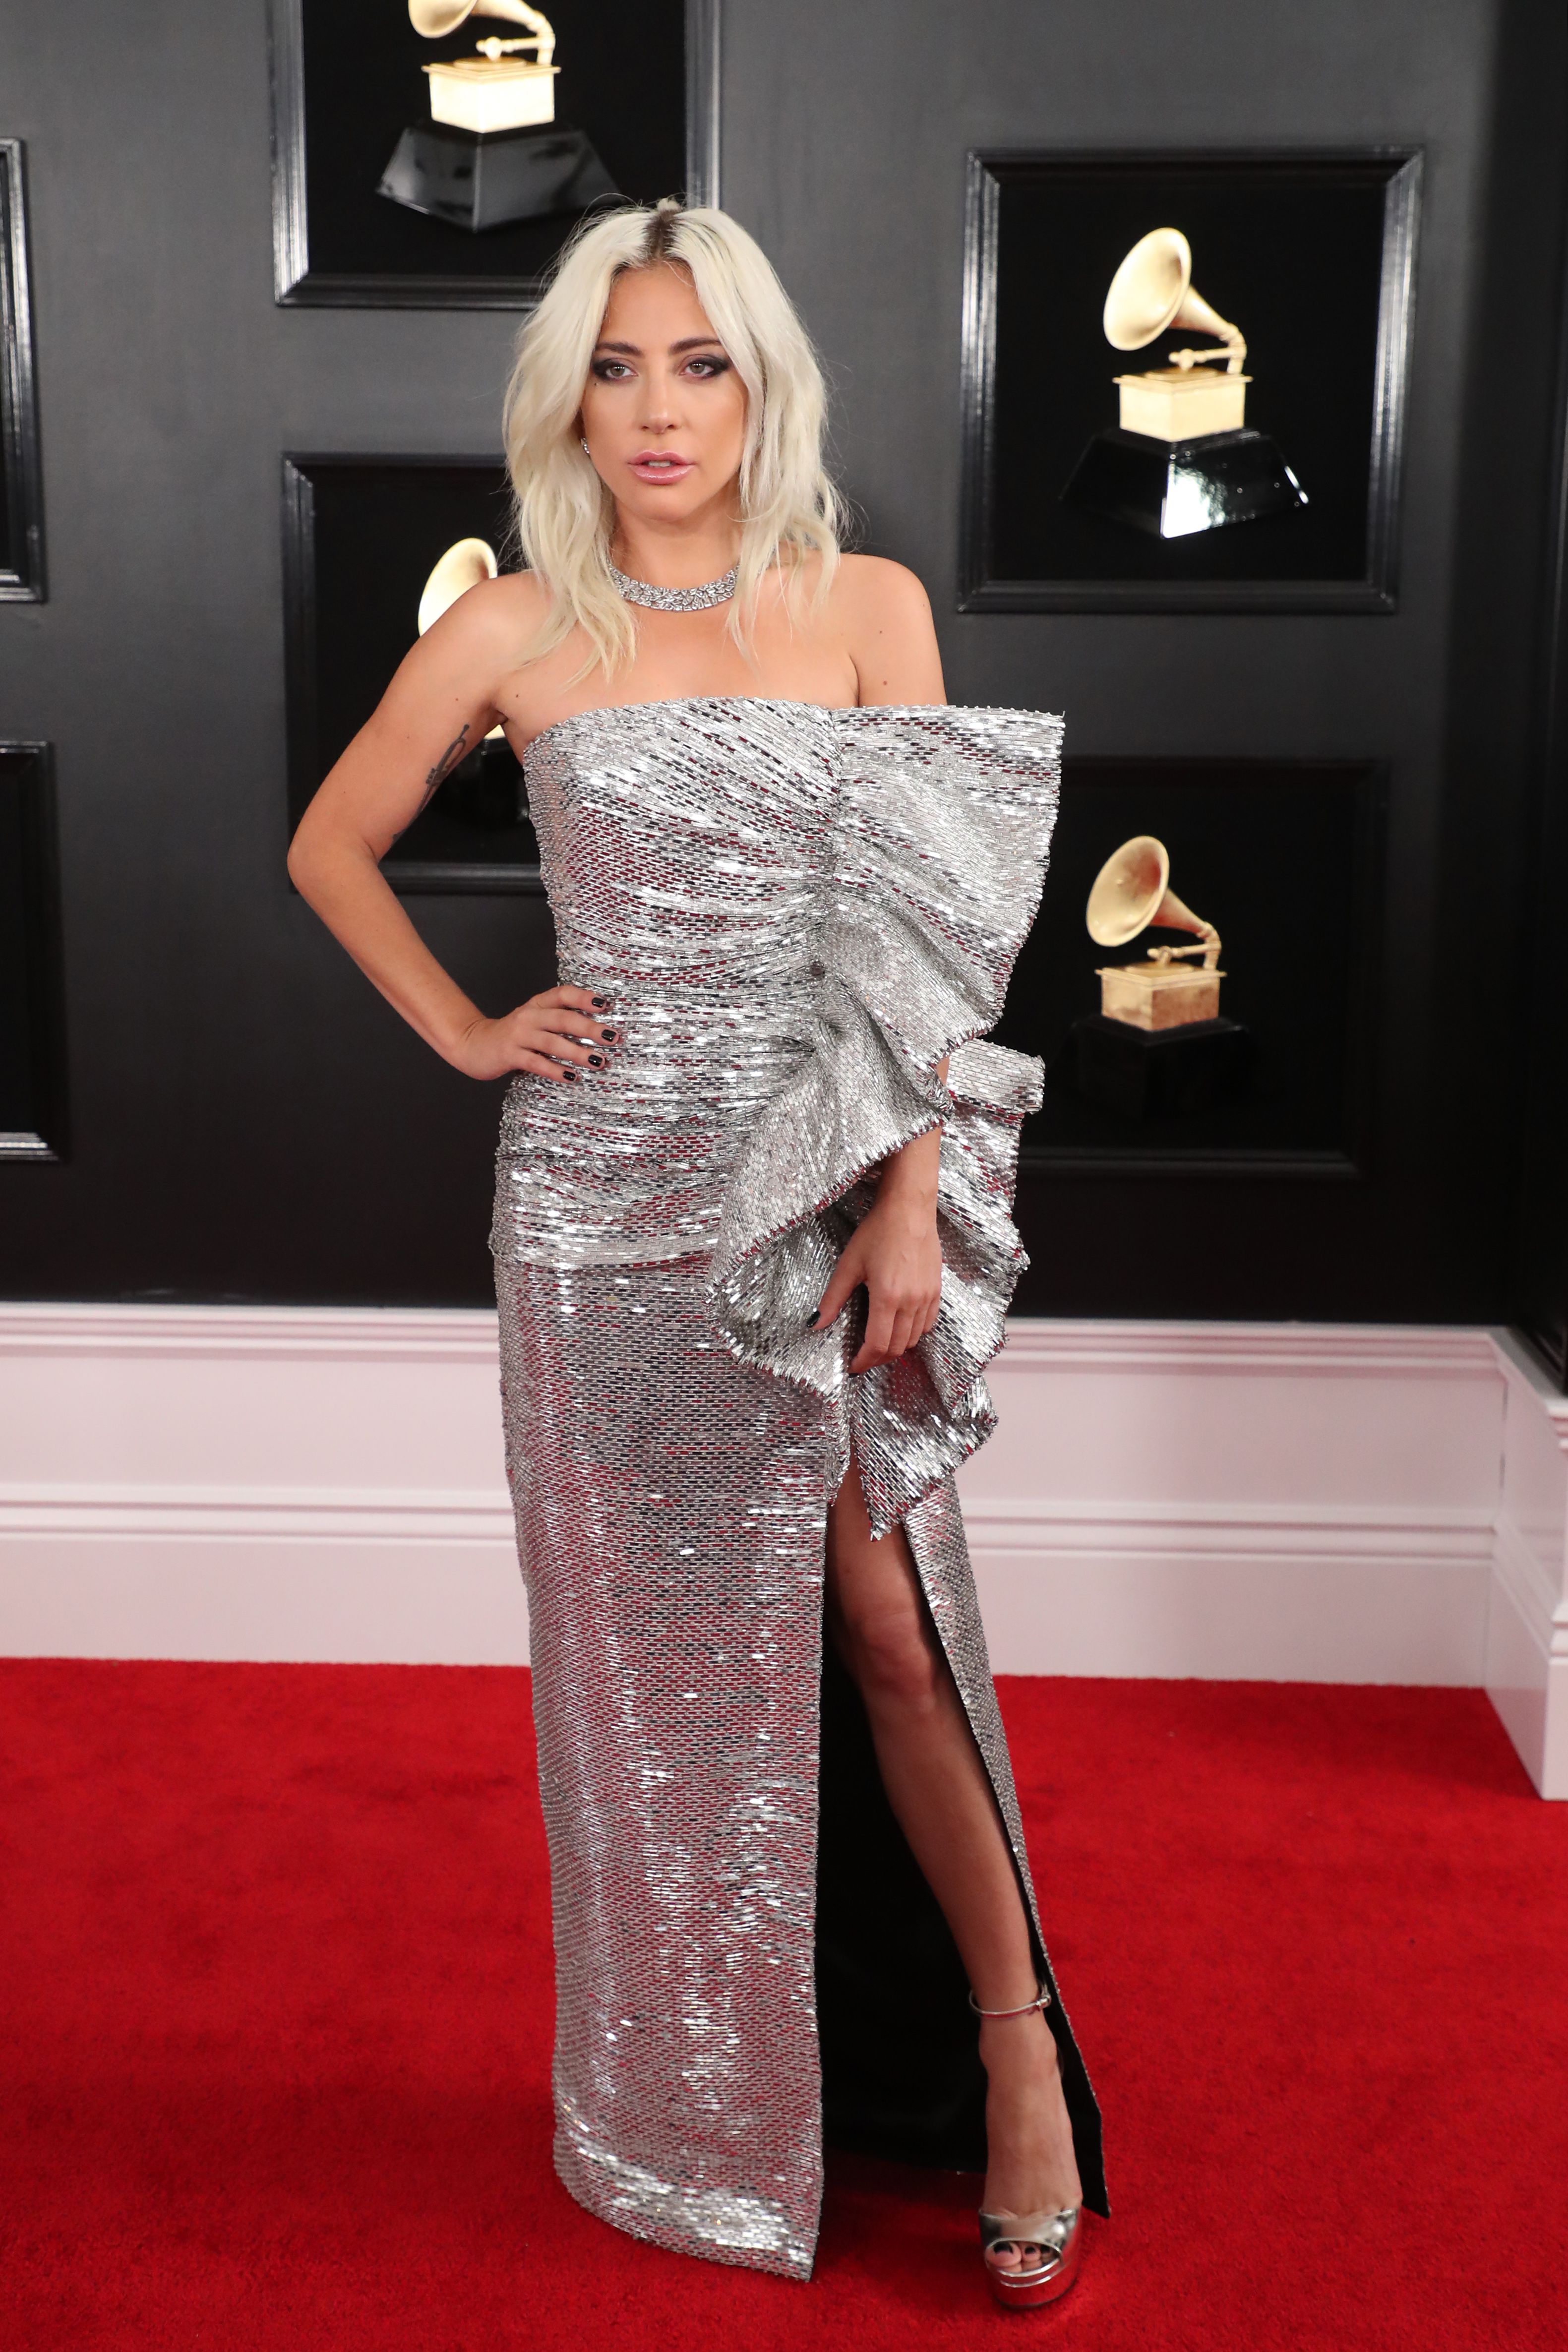 lady gaga s 2019 grammys look is disco ball chic stylecaster https stylecaster com lady gaga grammys look 2019